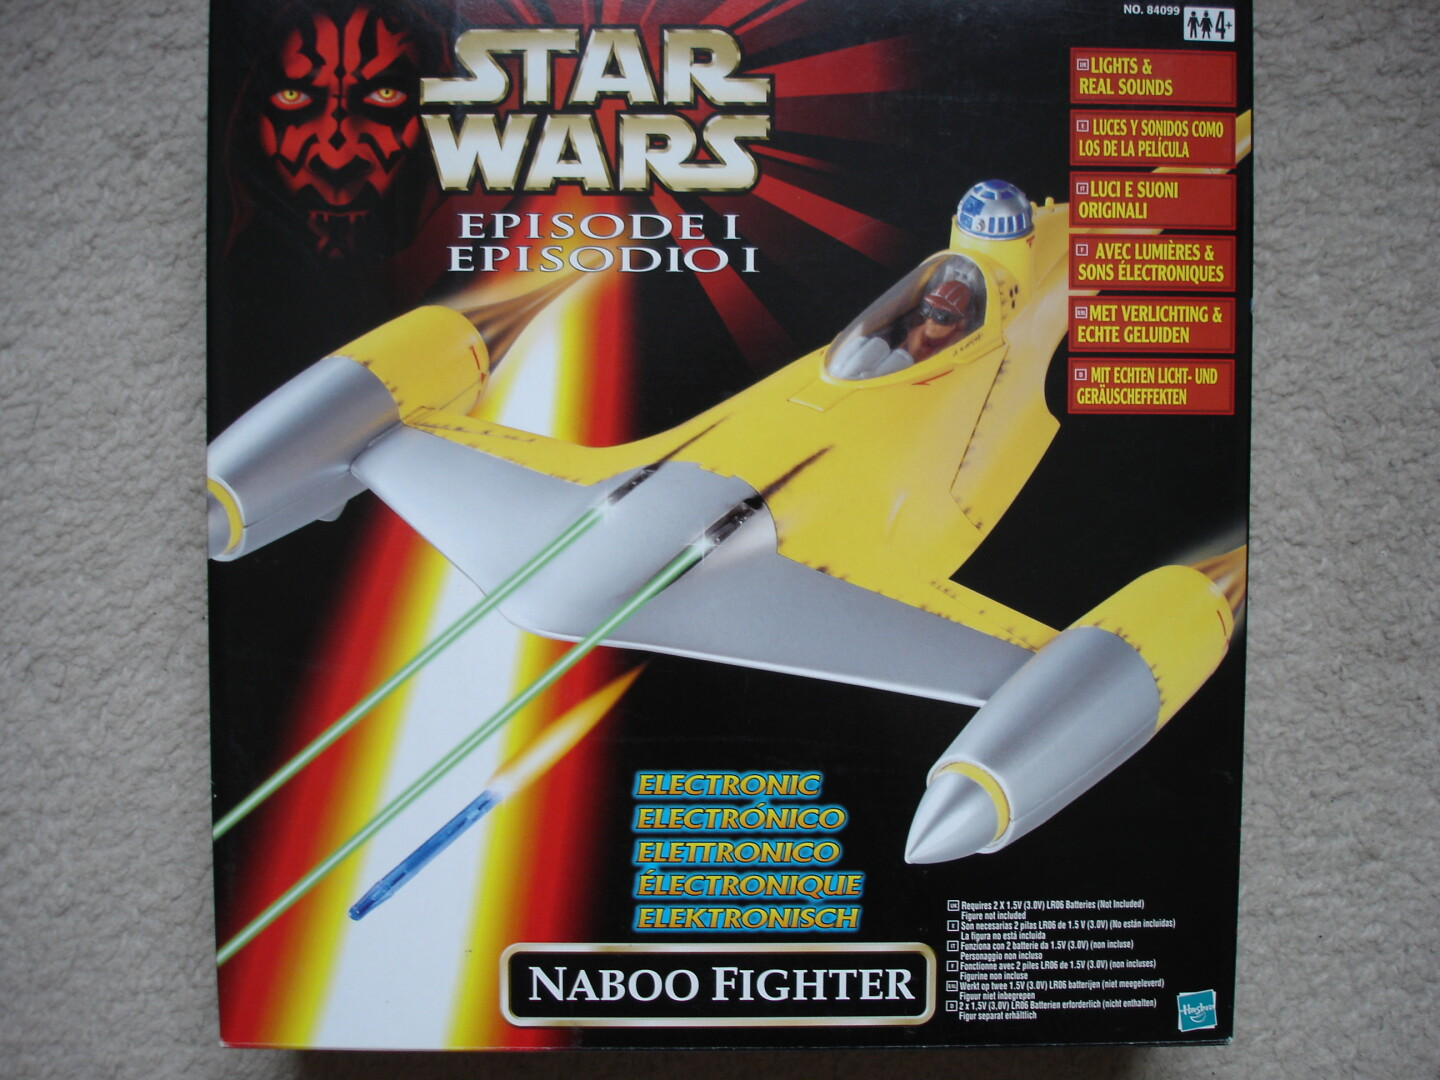 TPM Naboo Fighter